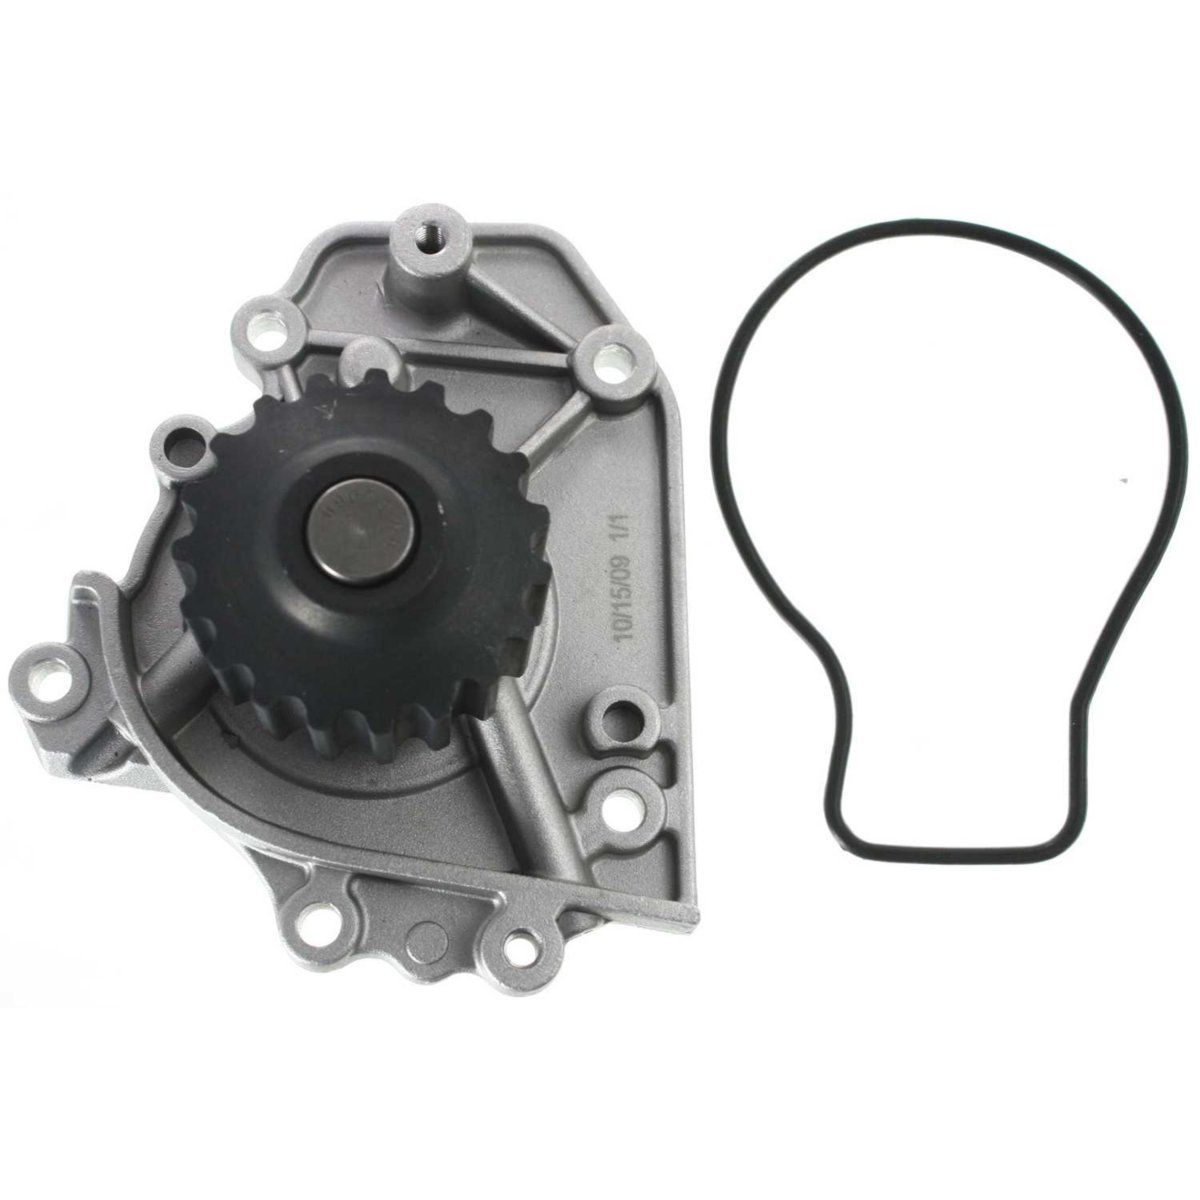 NEW WATER PUMP ASSEMBLY FITS 1996-2001 ACURA INTEGRA